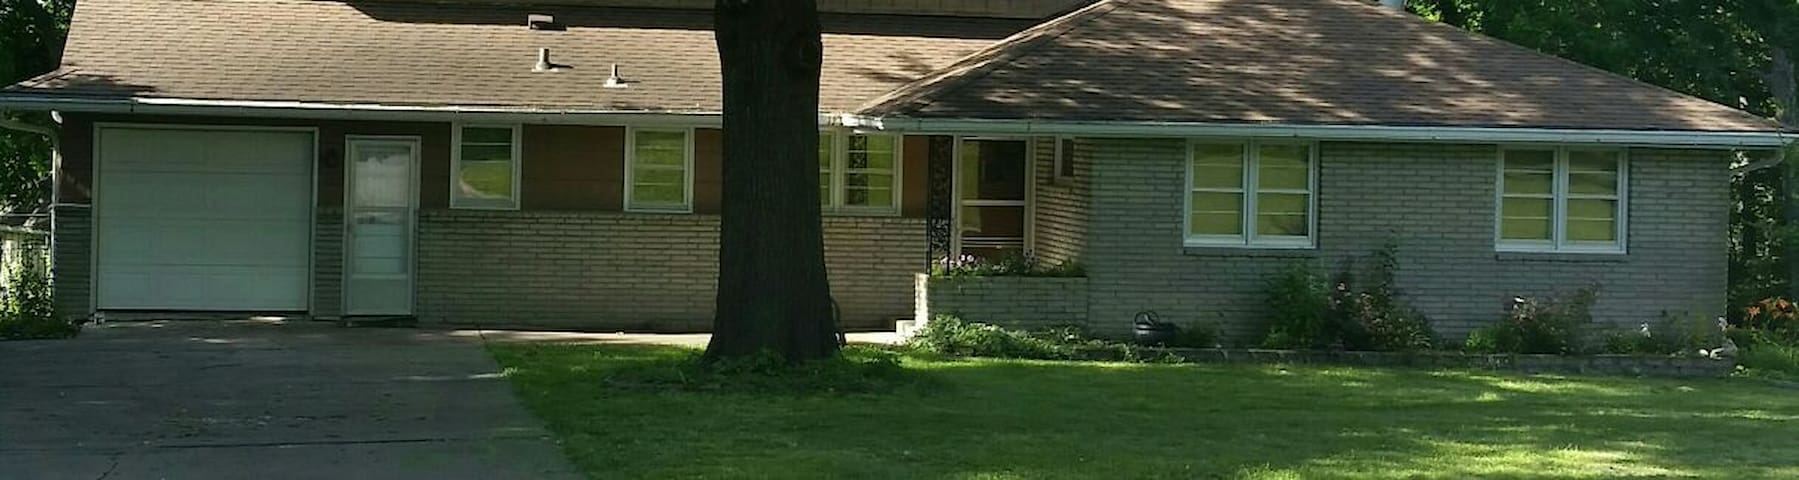 3 bedrooms on private level - Kansas City - Hus